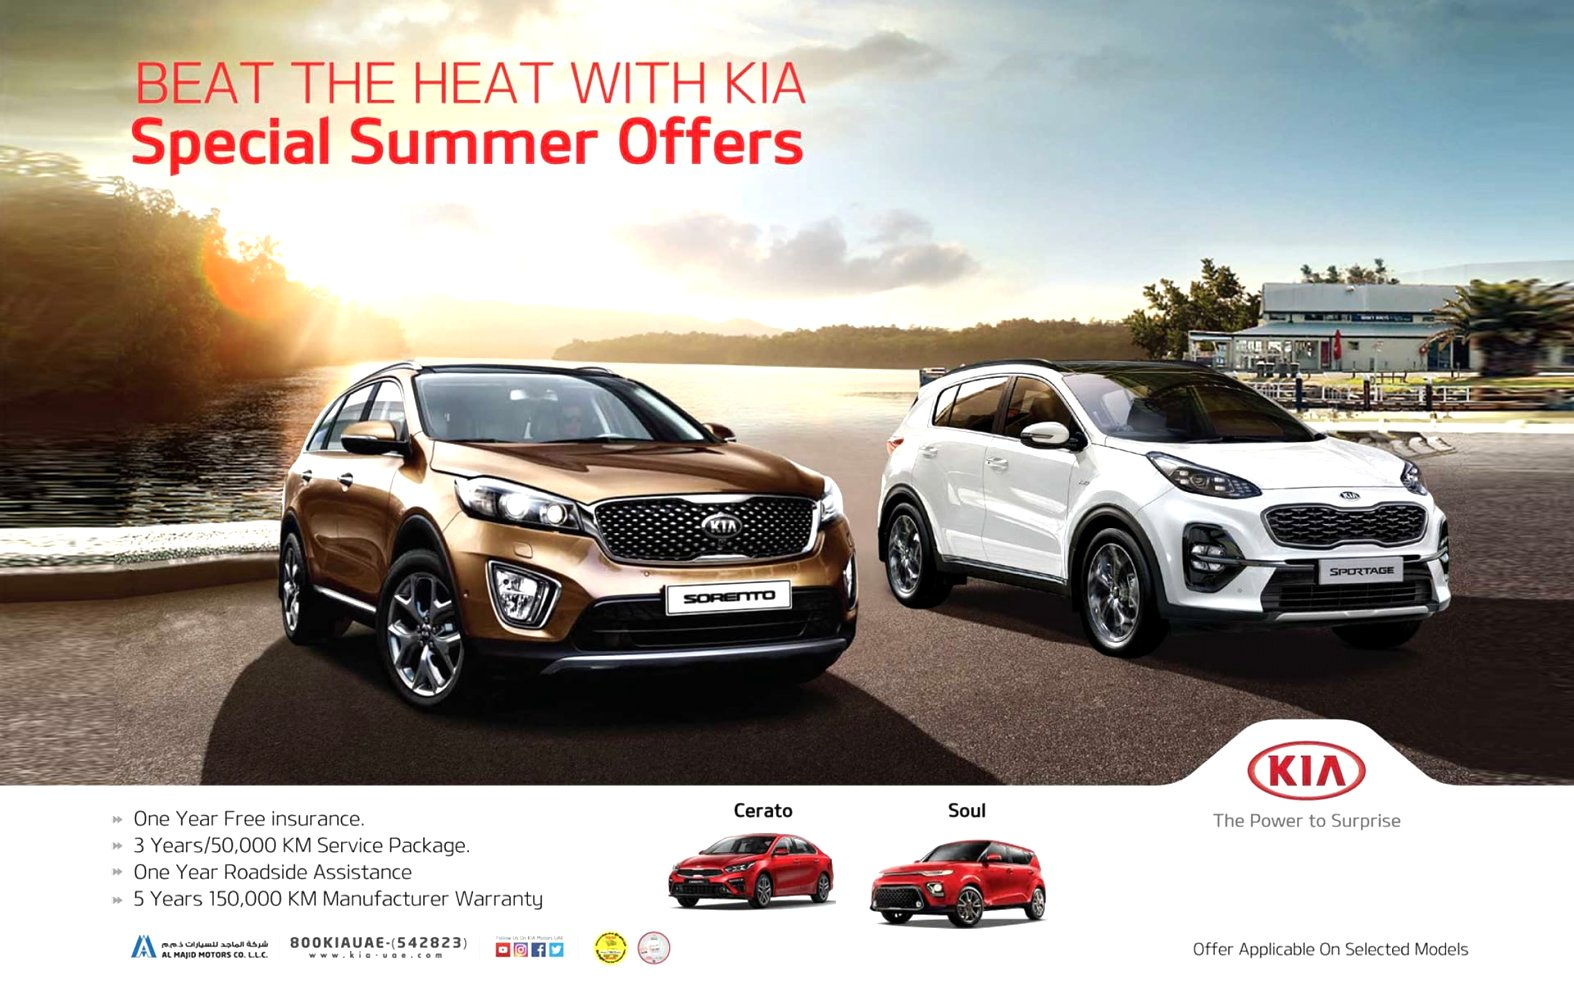 kia buy one get one 2020 First Drive